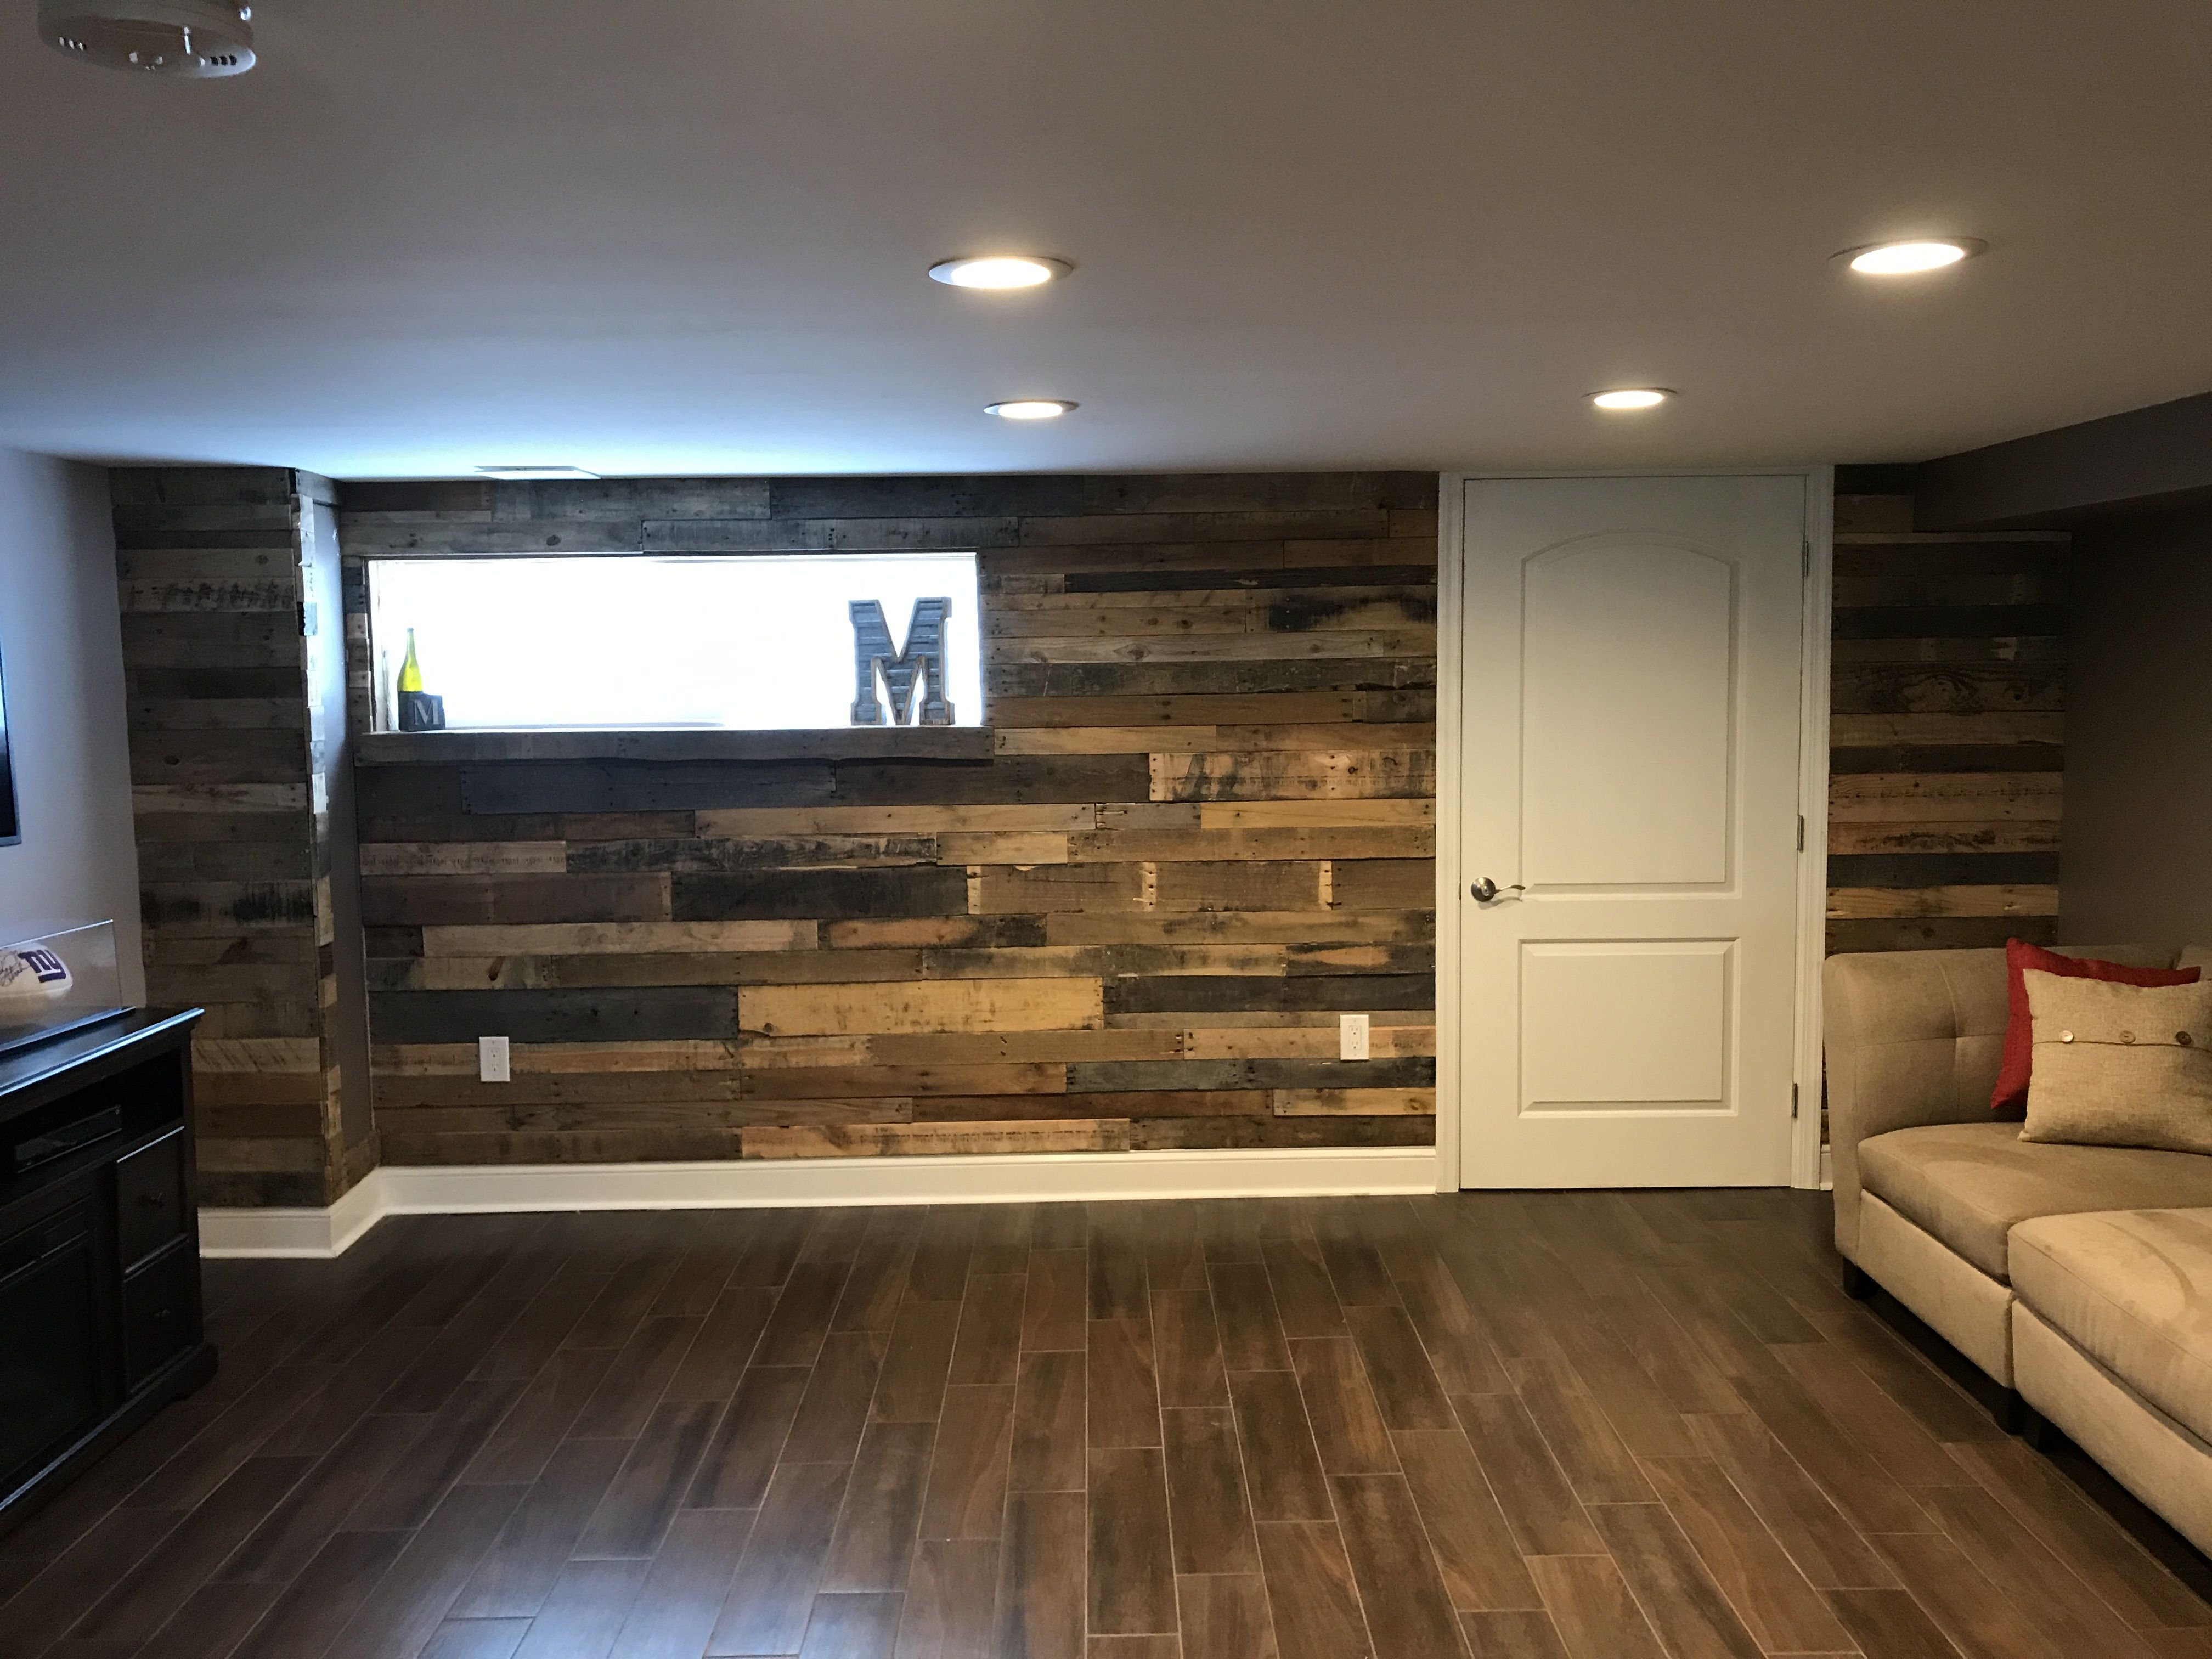 Pallet Wood Accent Wall With Baseboard In Basement Mancave Man Cave Home Bar Man Cave Wall Decor Bars For Home